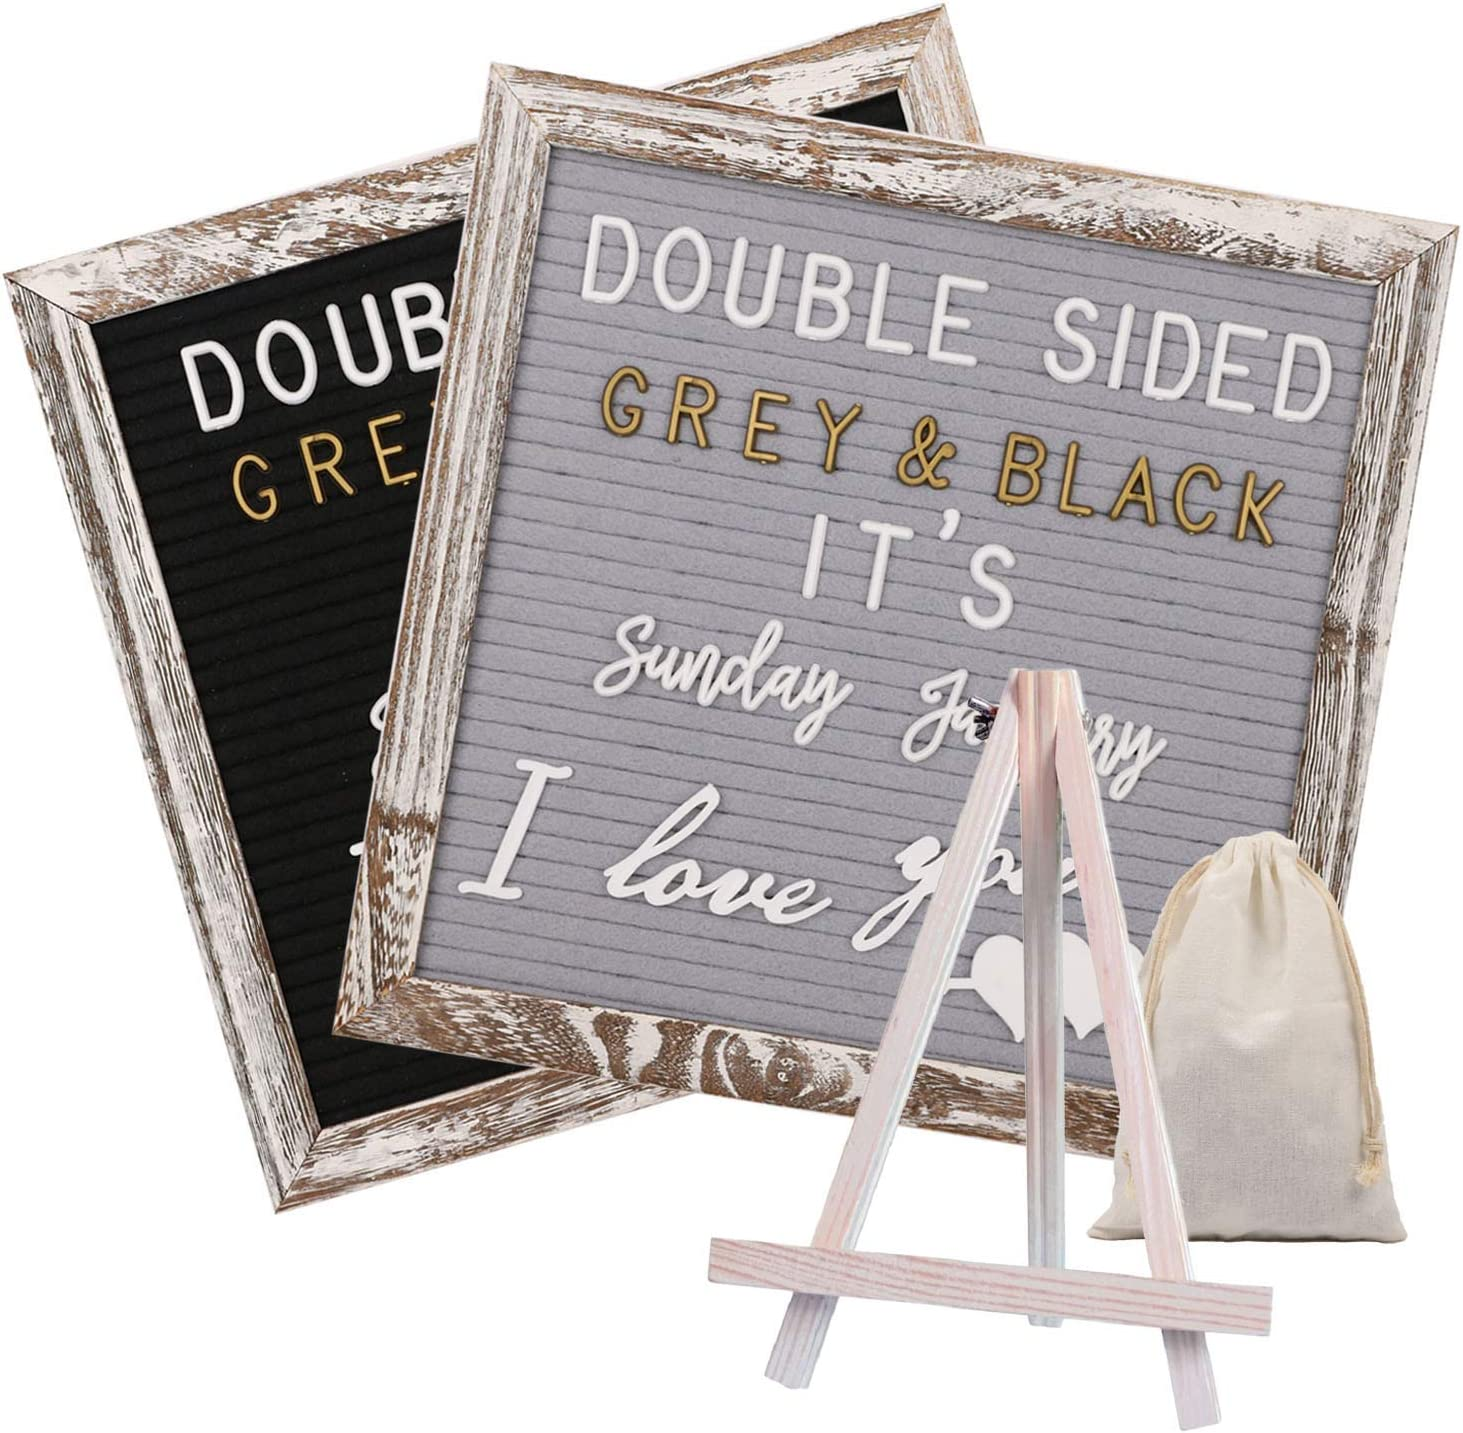 Awefrank Double Sided Felt Letter Board with 750 Pre-Cut Gold & White Letters, Months & Days Cursive Words, Numbers, Emojis, Tabletop Display, Letter Bags, Rustic Stand